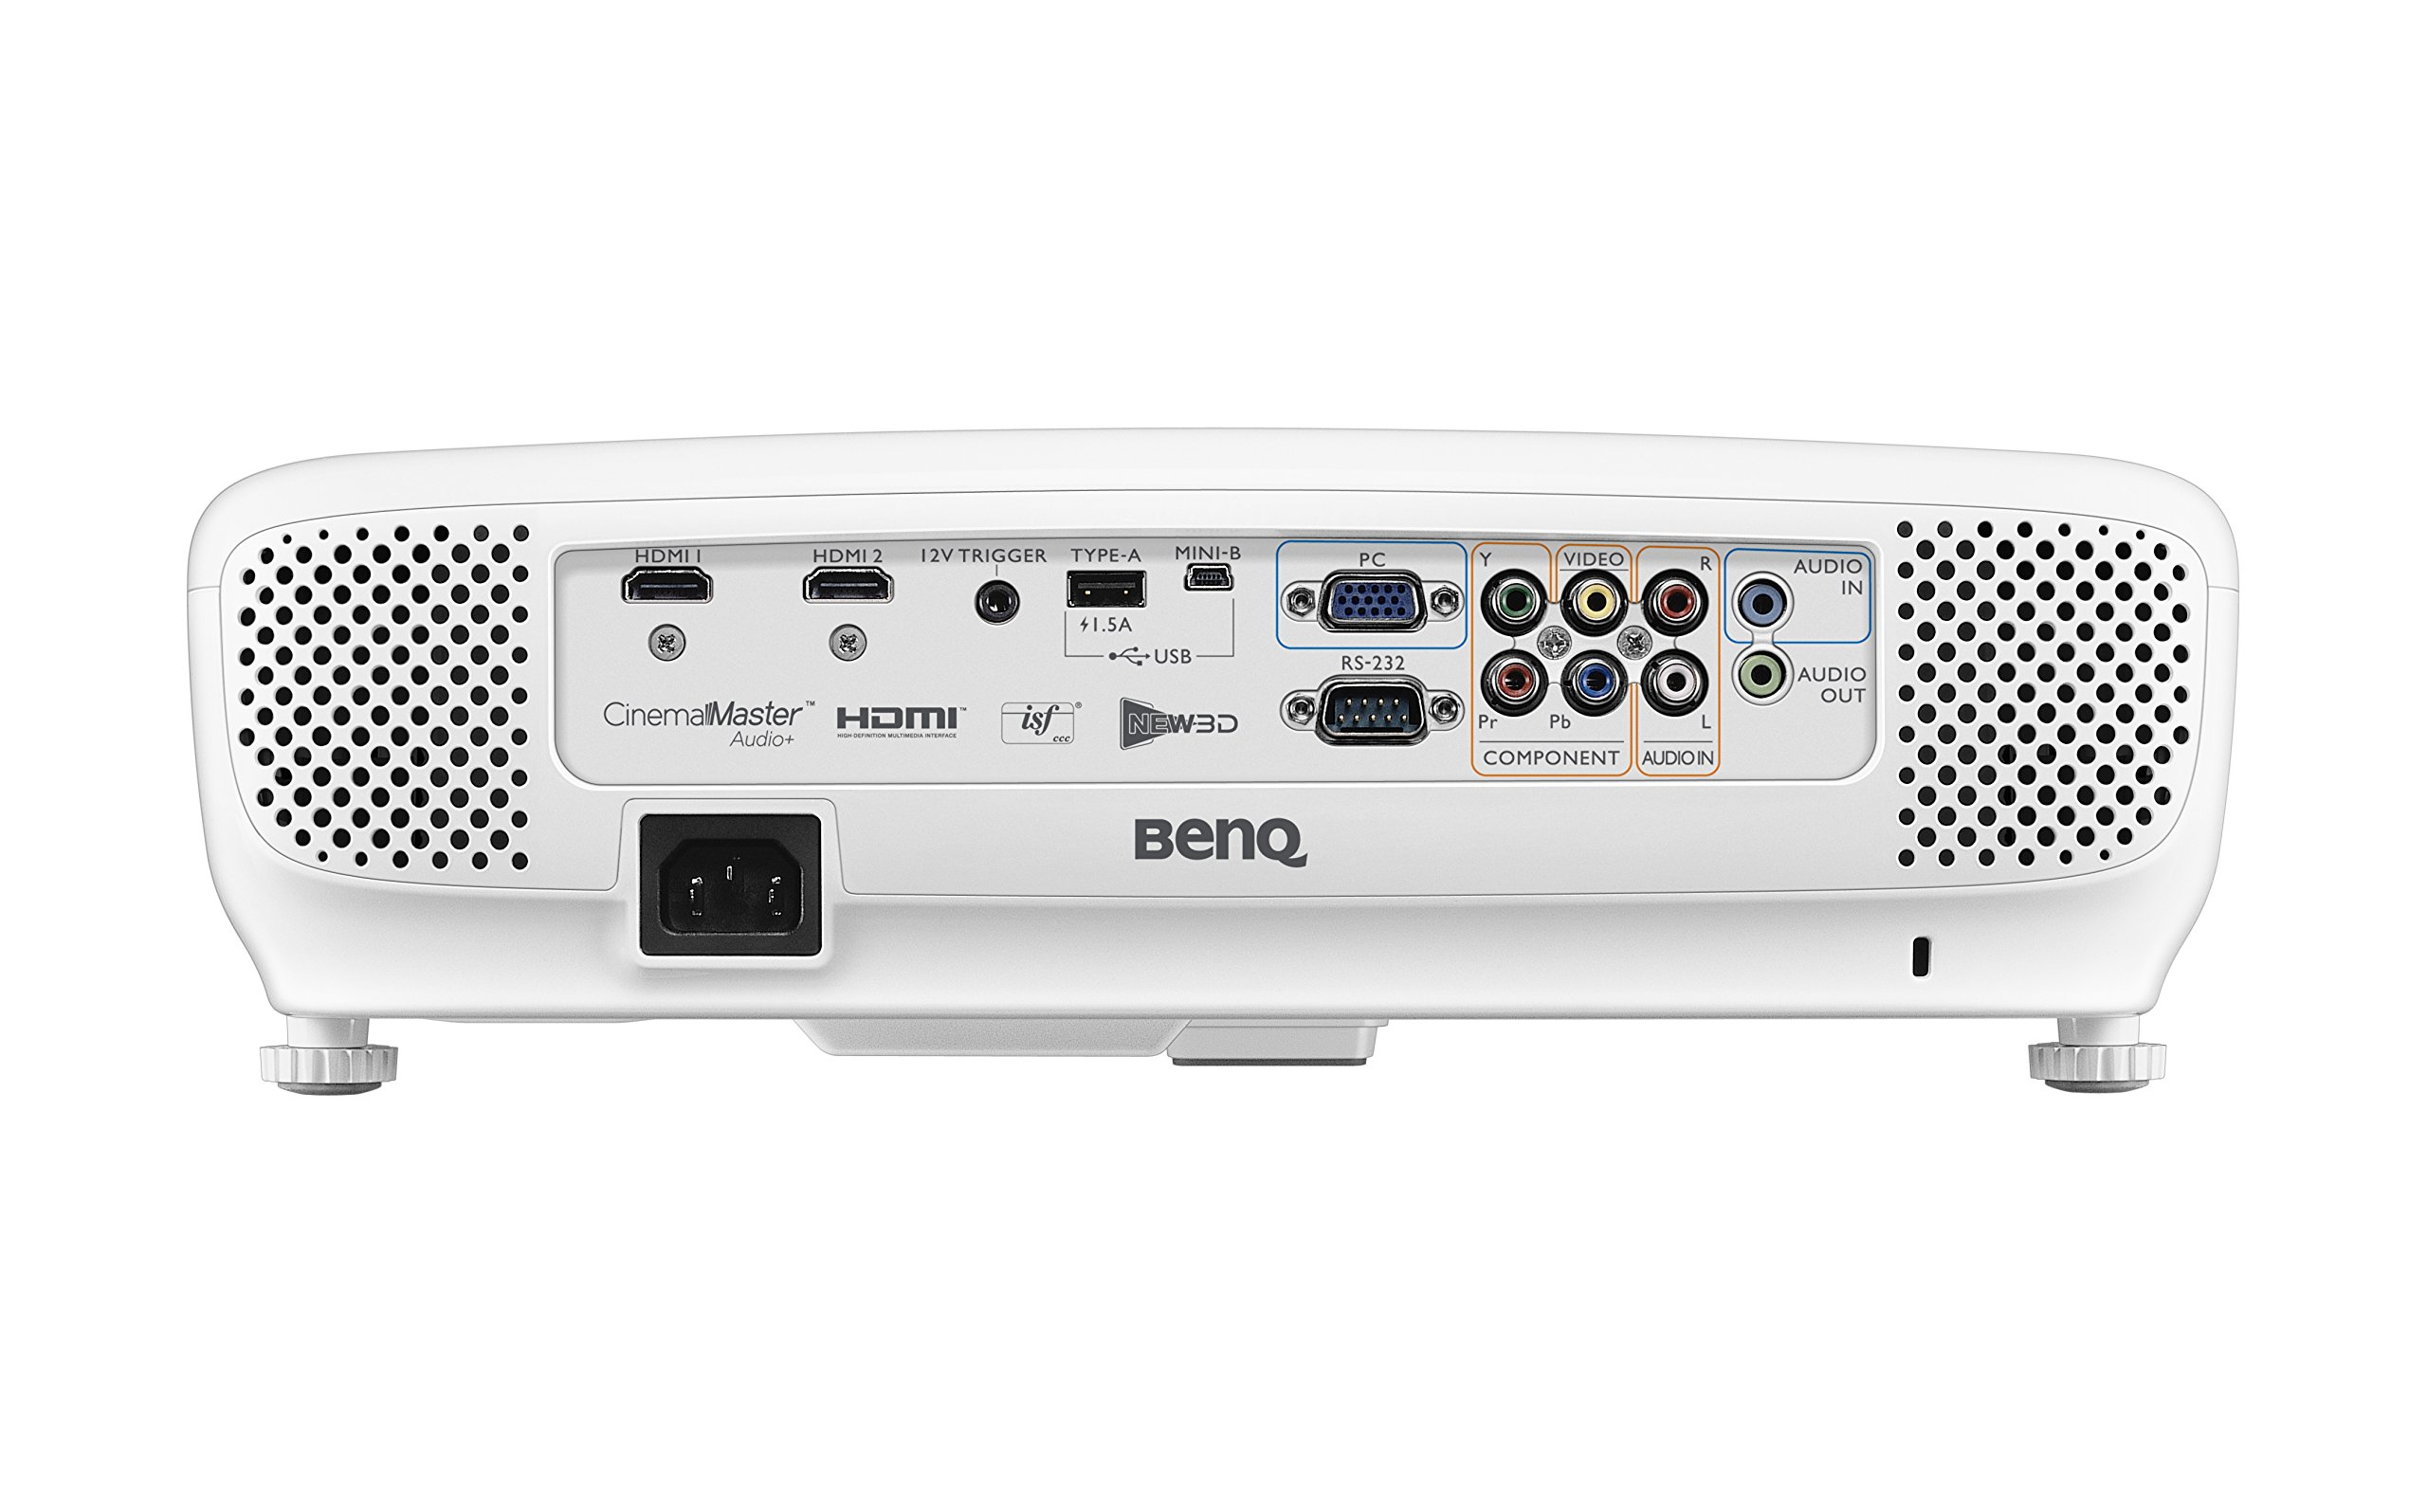 BenQ DLP HD 1080p Projector (HT2050) - 3D Home Theater Projector with All-Glass Cinema Grade Lens and RGBRGB Color Wheel by BenQ (Image #2)